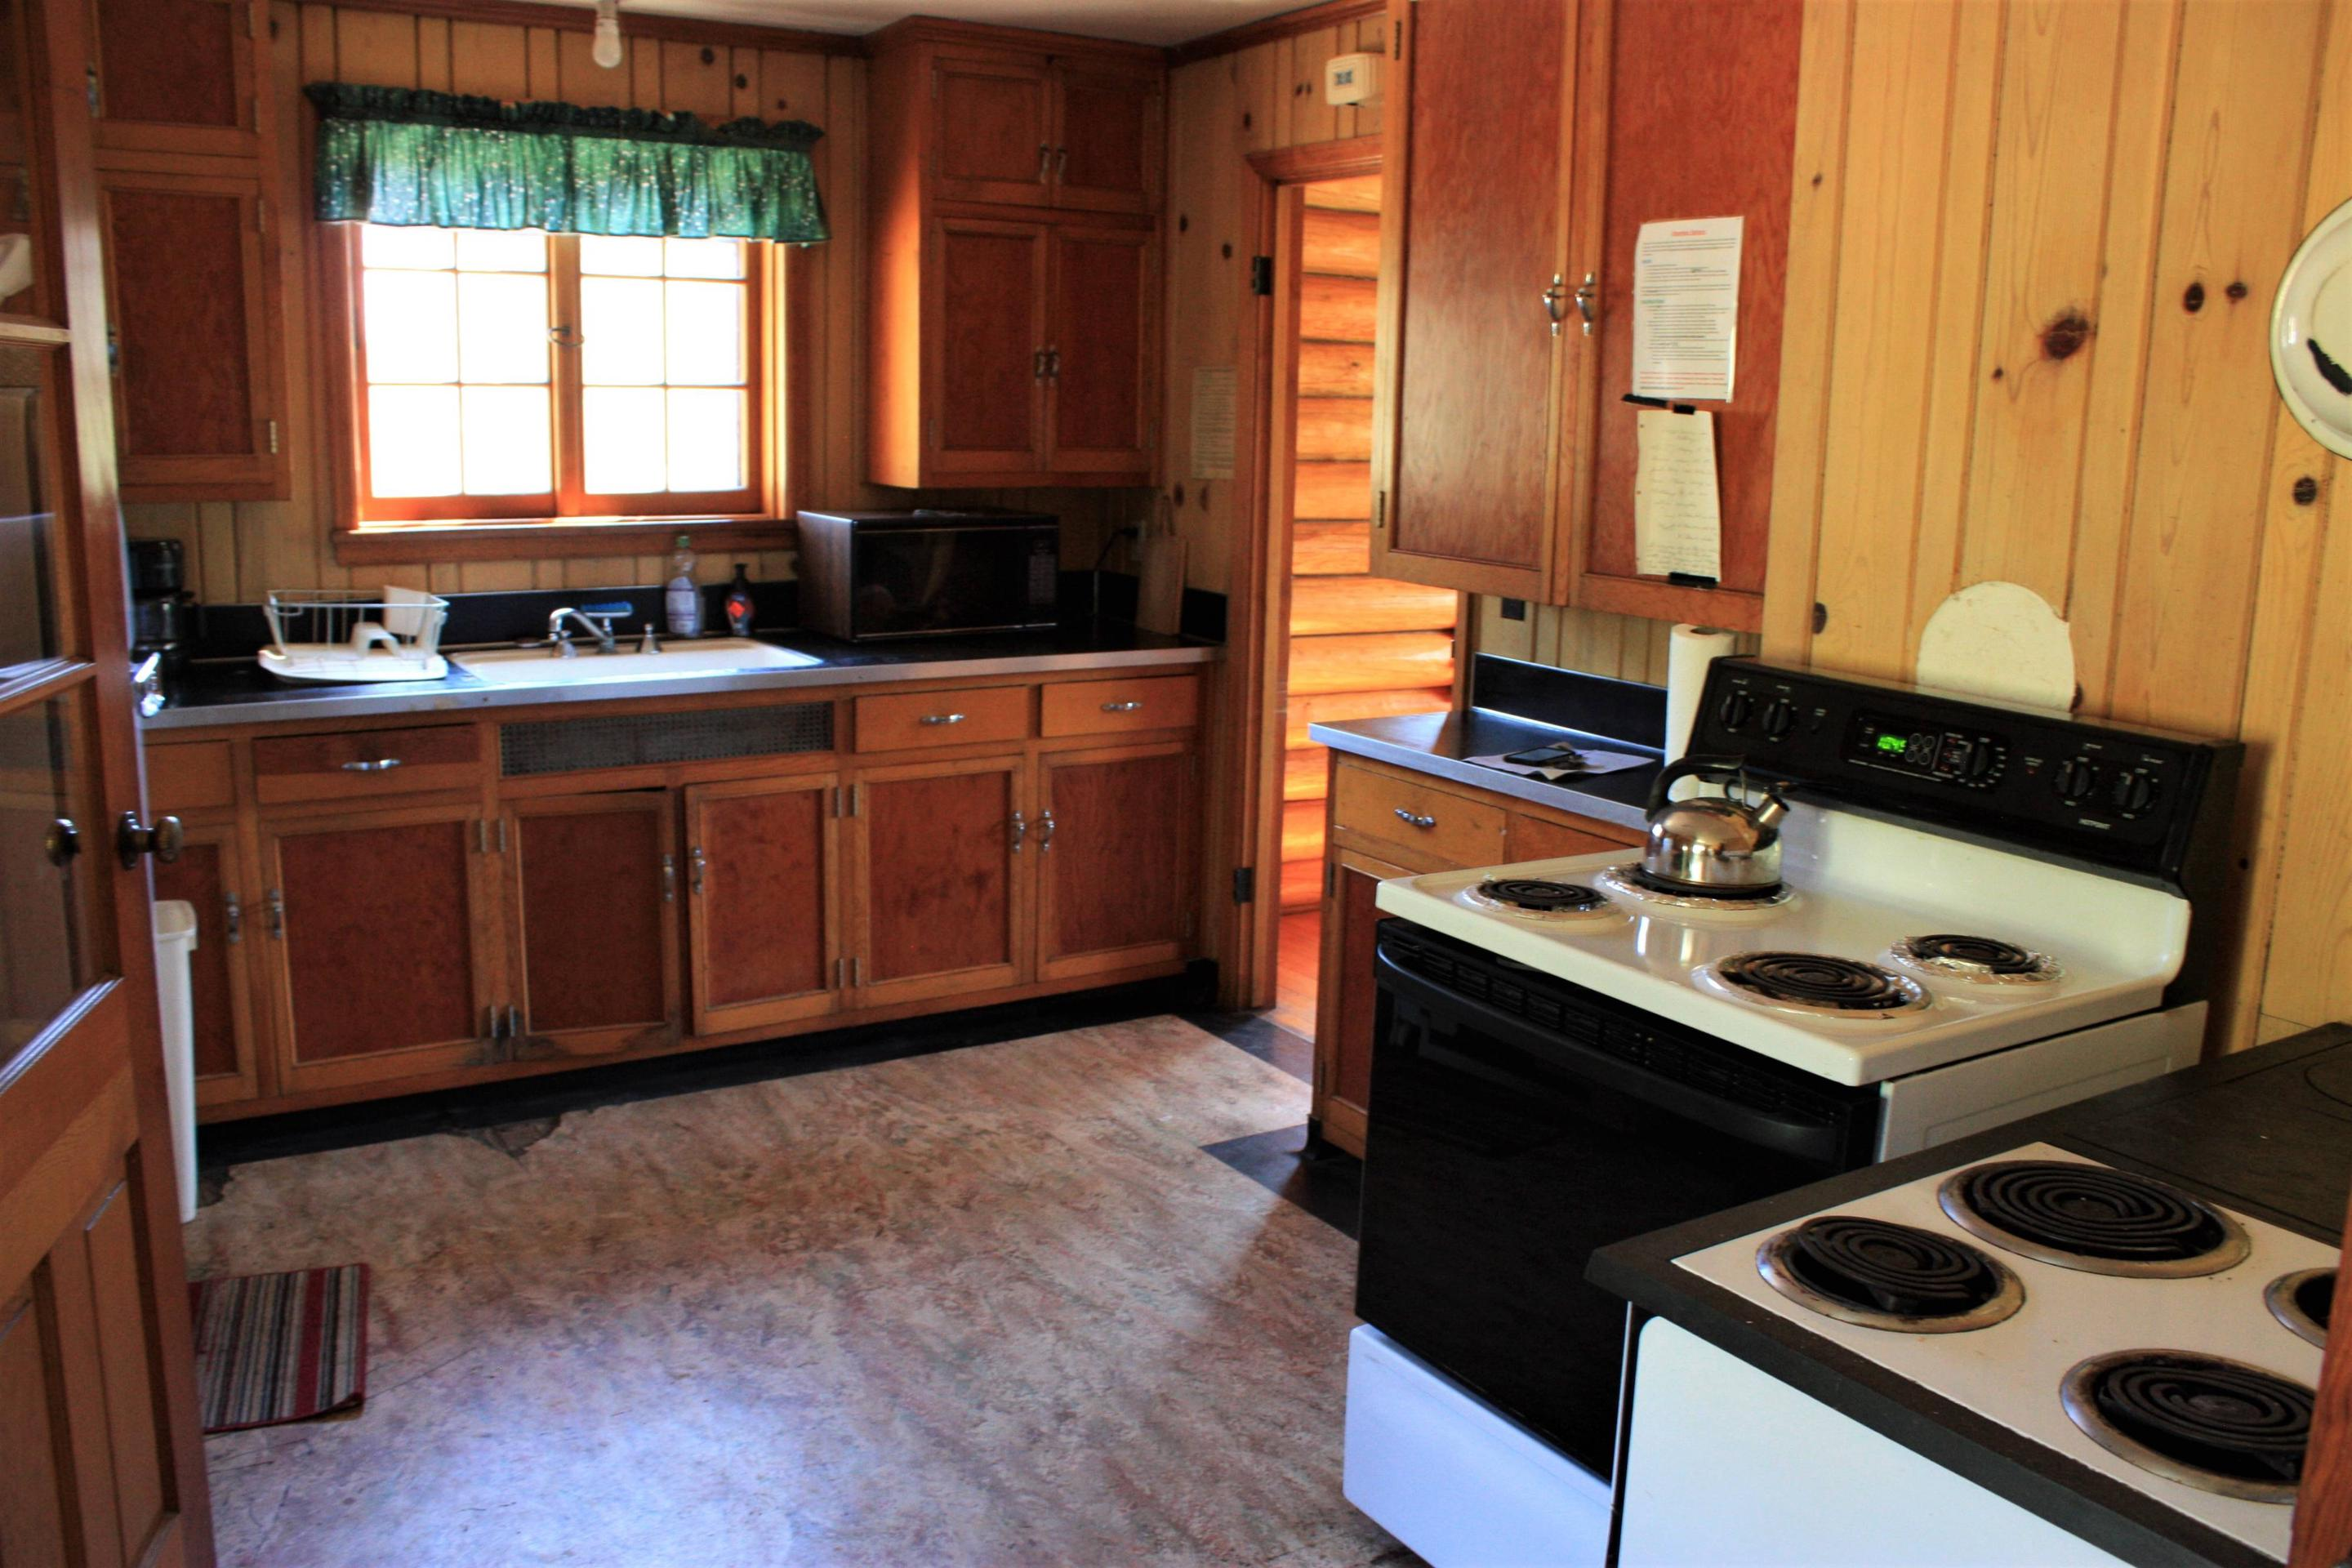 Keystone Ranger Station kitchen